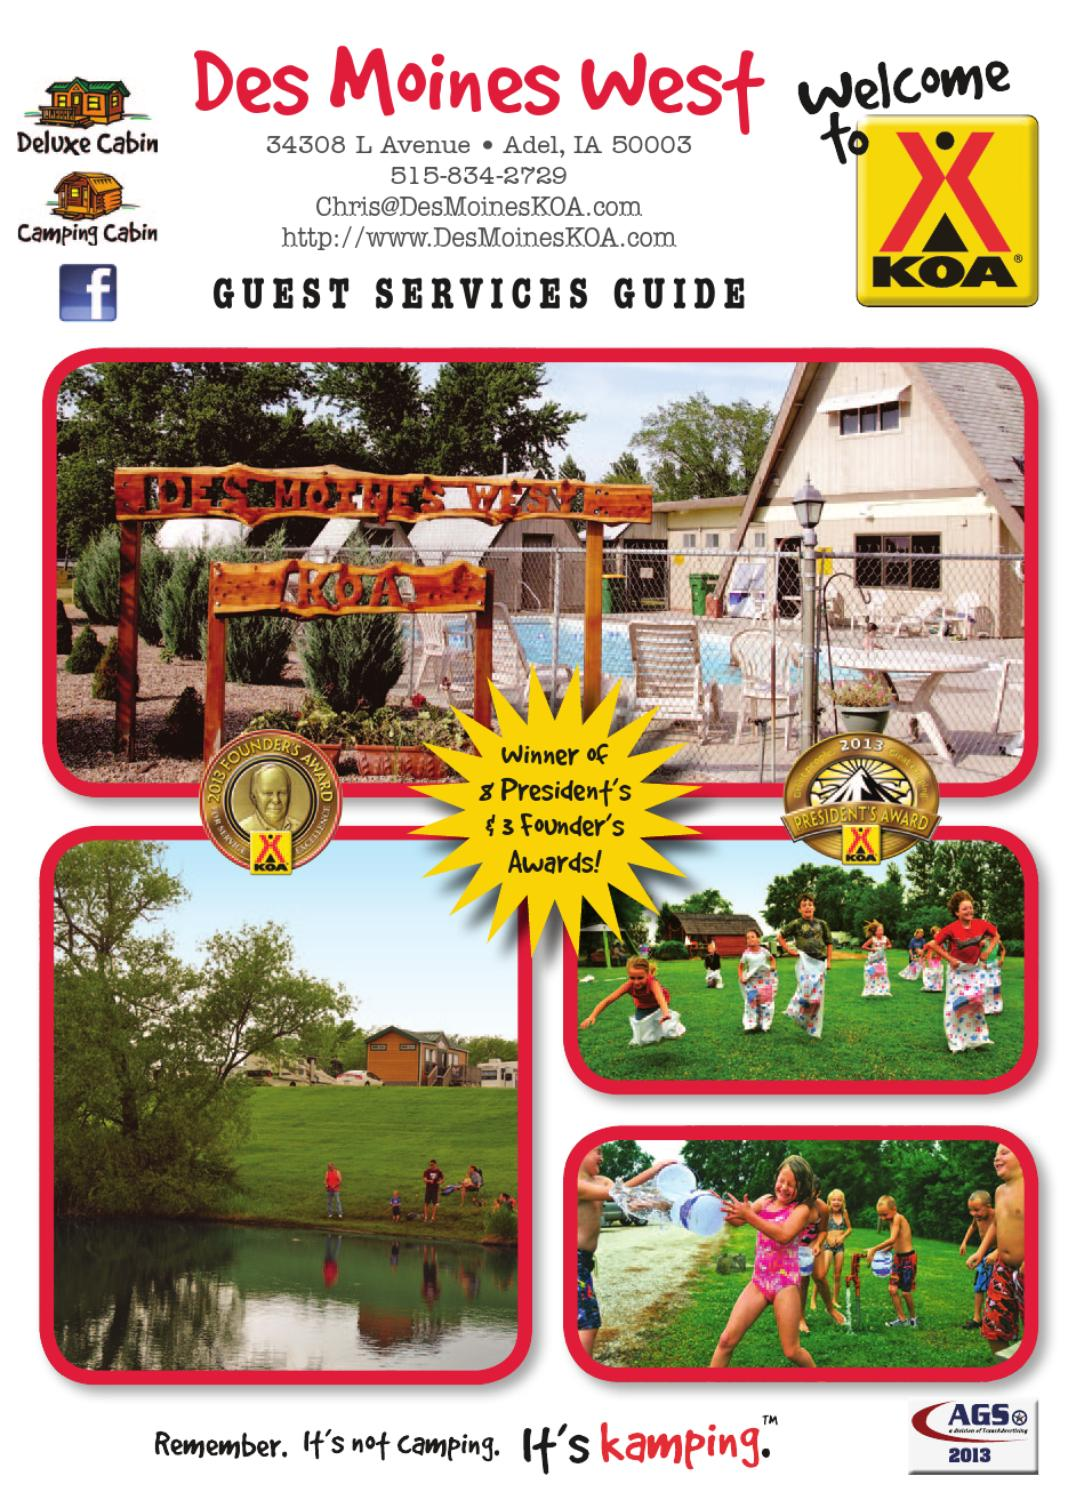 Des moines west koa by ags texas advertising issuu for Mckee motors des moines